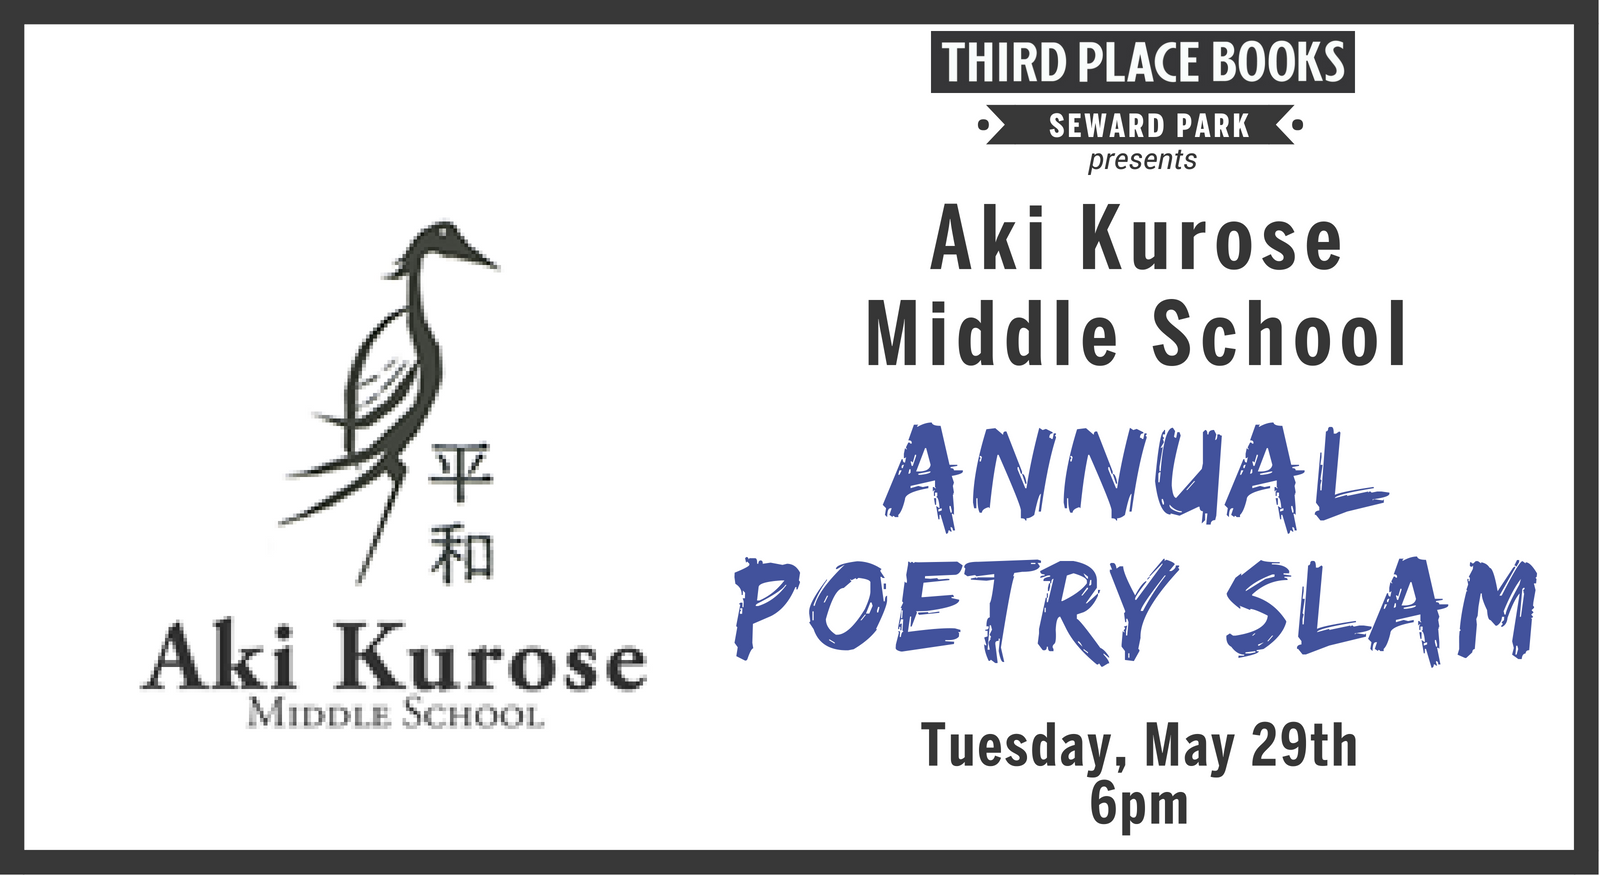 Aki Kurose Annual Poetry Slam! on Tuesday, May 29th at 6pm